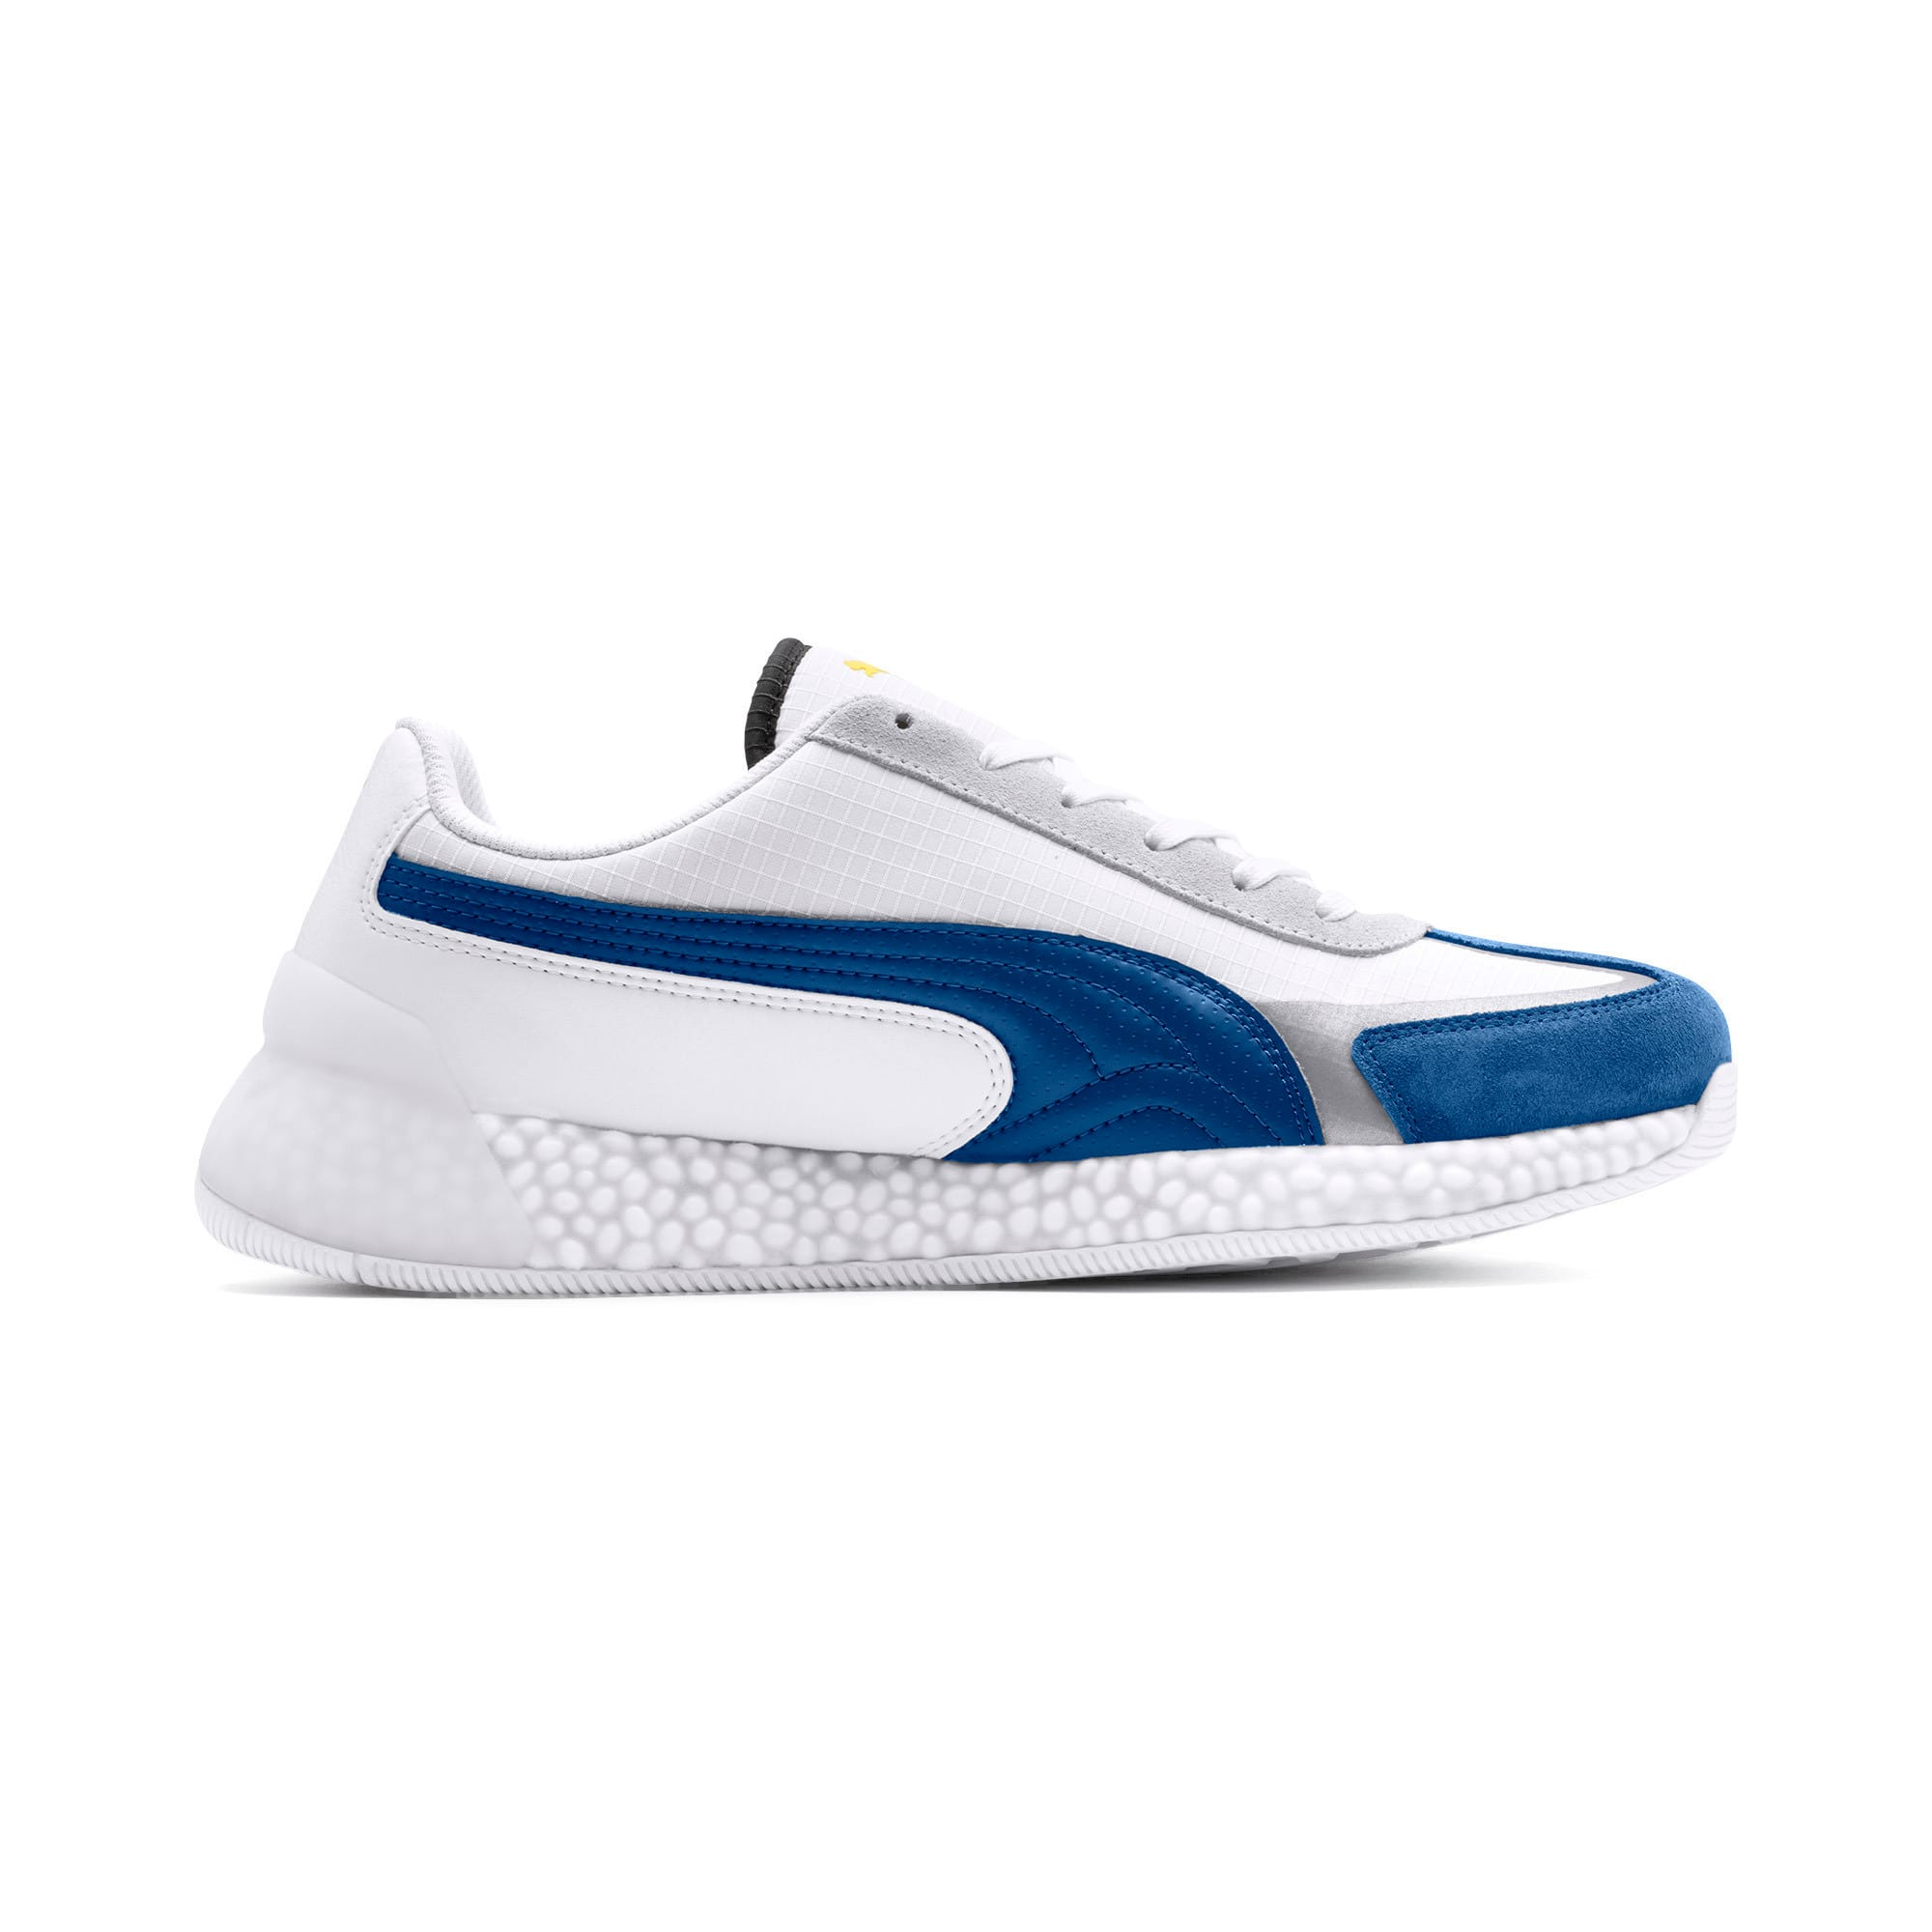 Thumbnail 6 of Scuderia Ferrari Speed HYBRID Running Shoes, Wht-Galaxy Blue-Rosso Corsa, medium